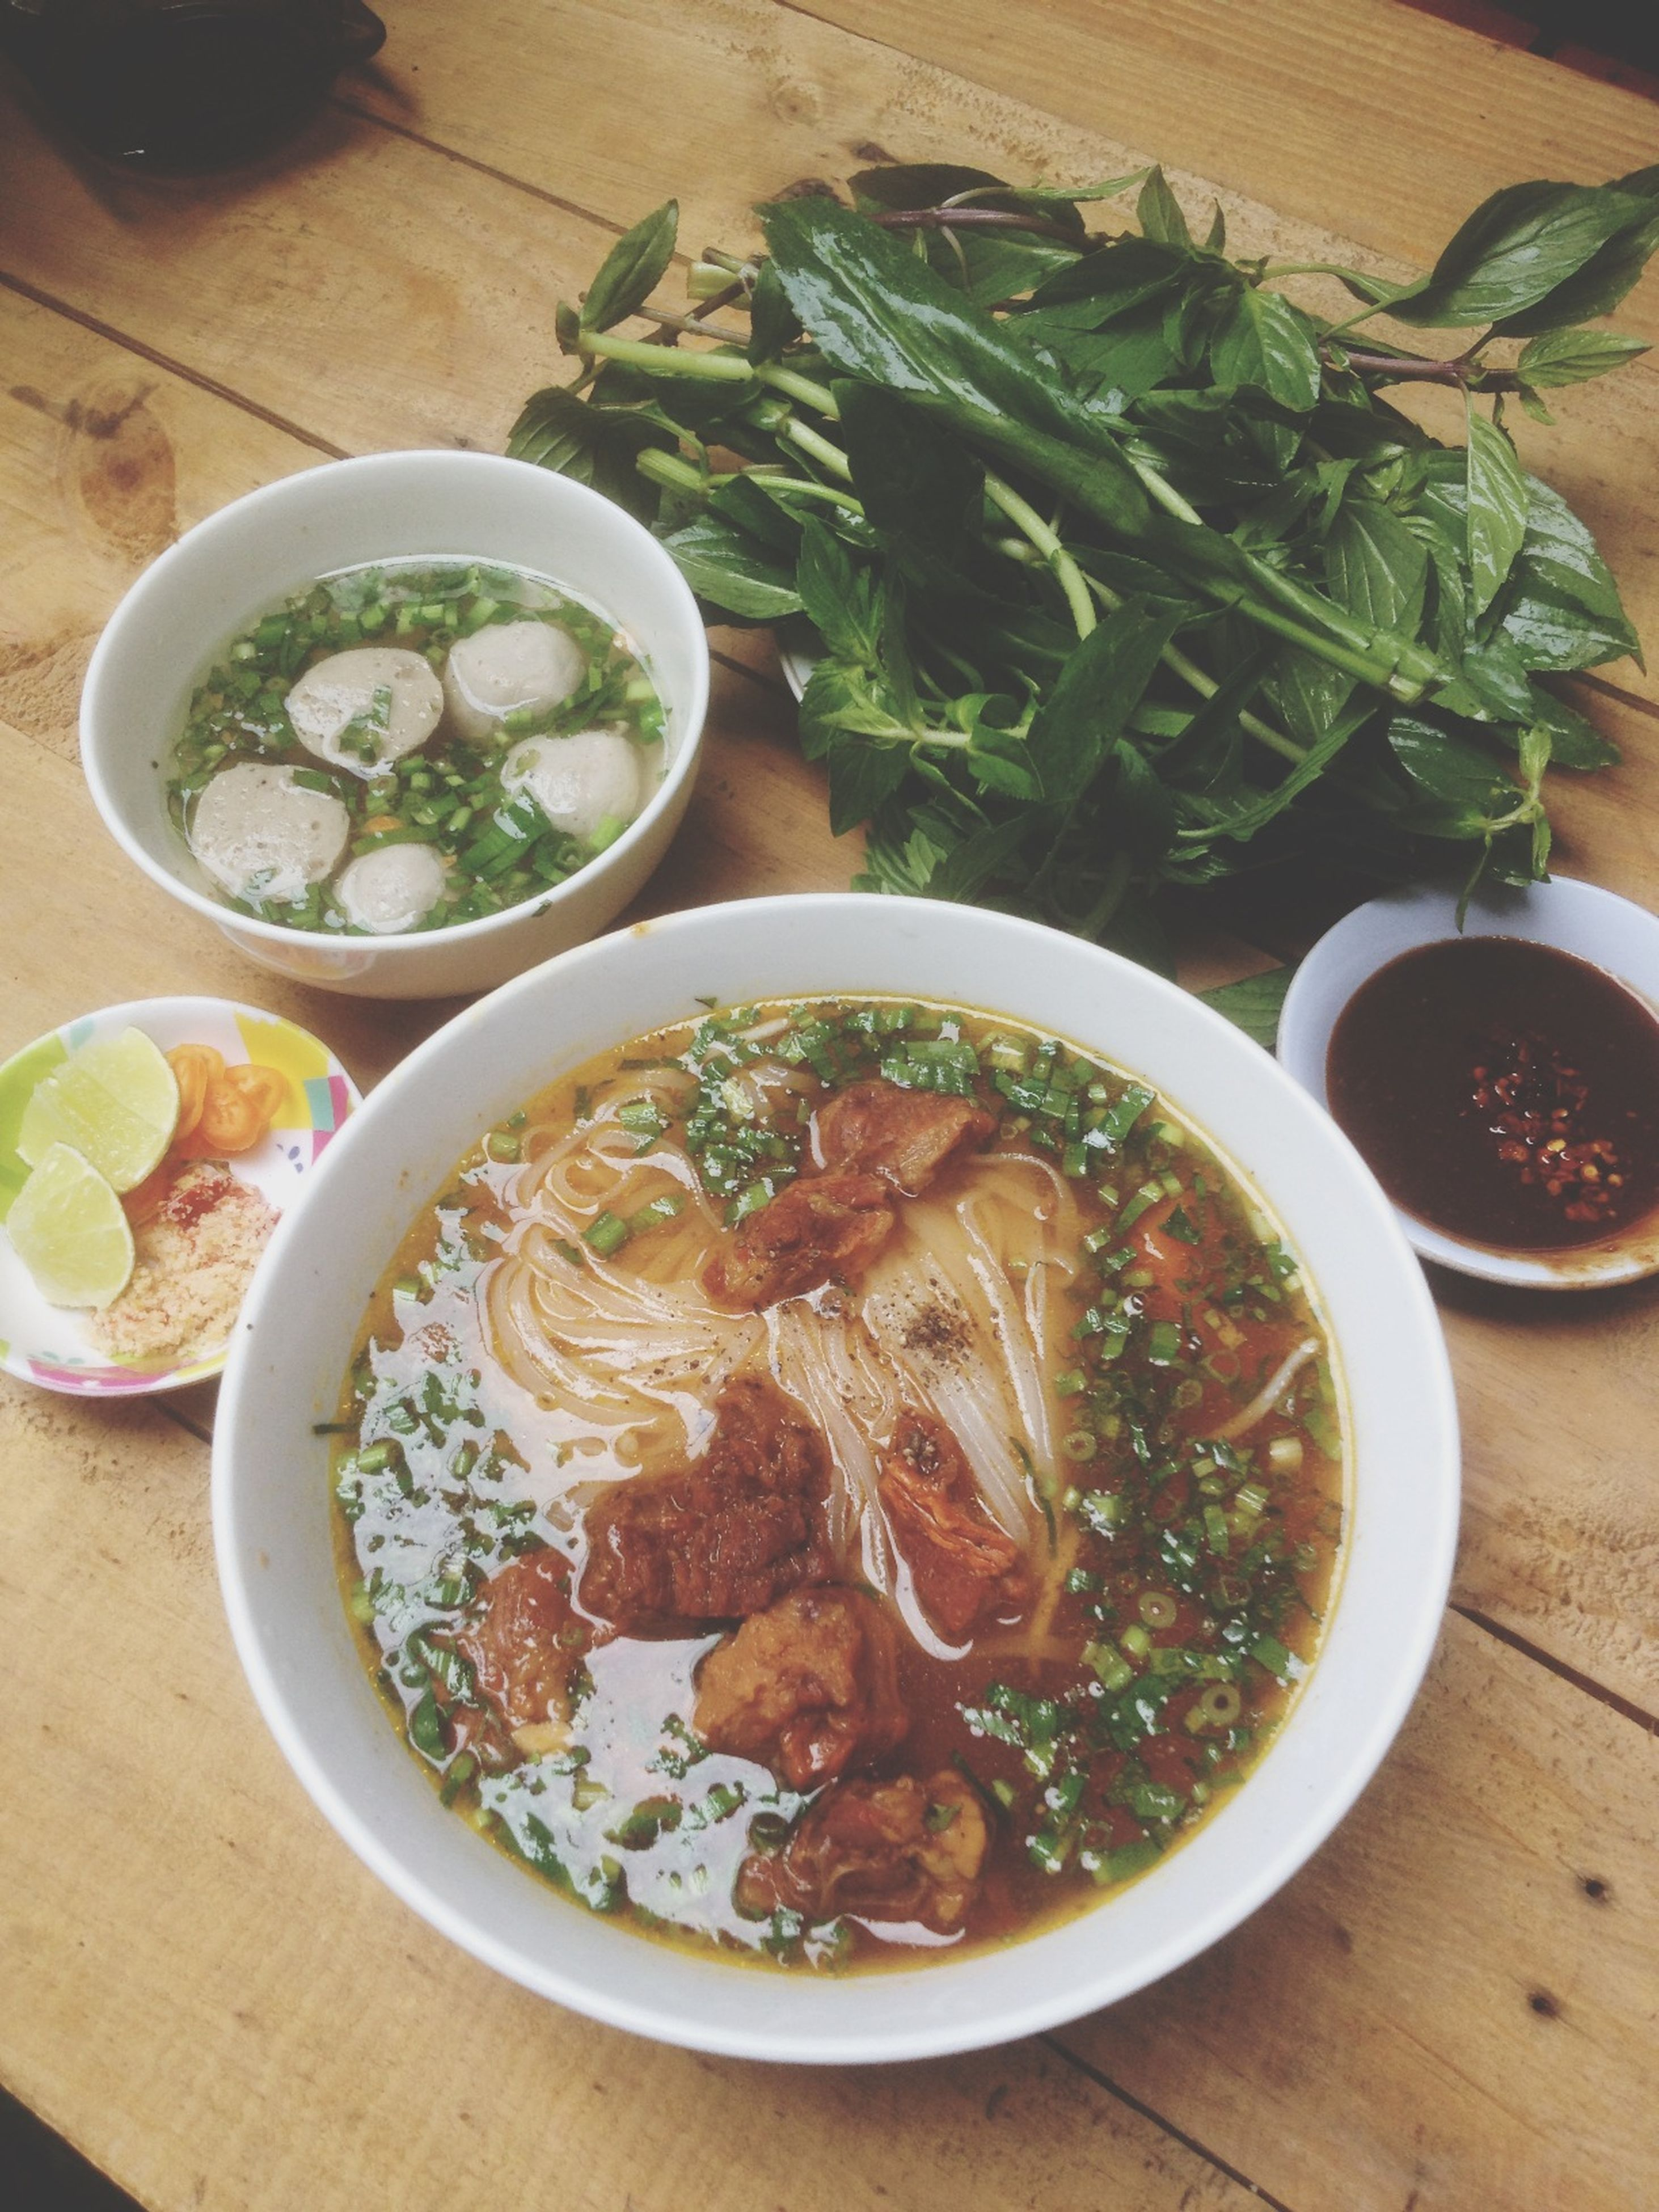 food and drink, food, table, freshness, indoors, ready-to-eat, plate, healthy eating, bowl, serving size, meal, still life, high angle view, served, soup, noodles, salad, directly above, close-up, vegetable